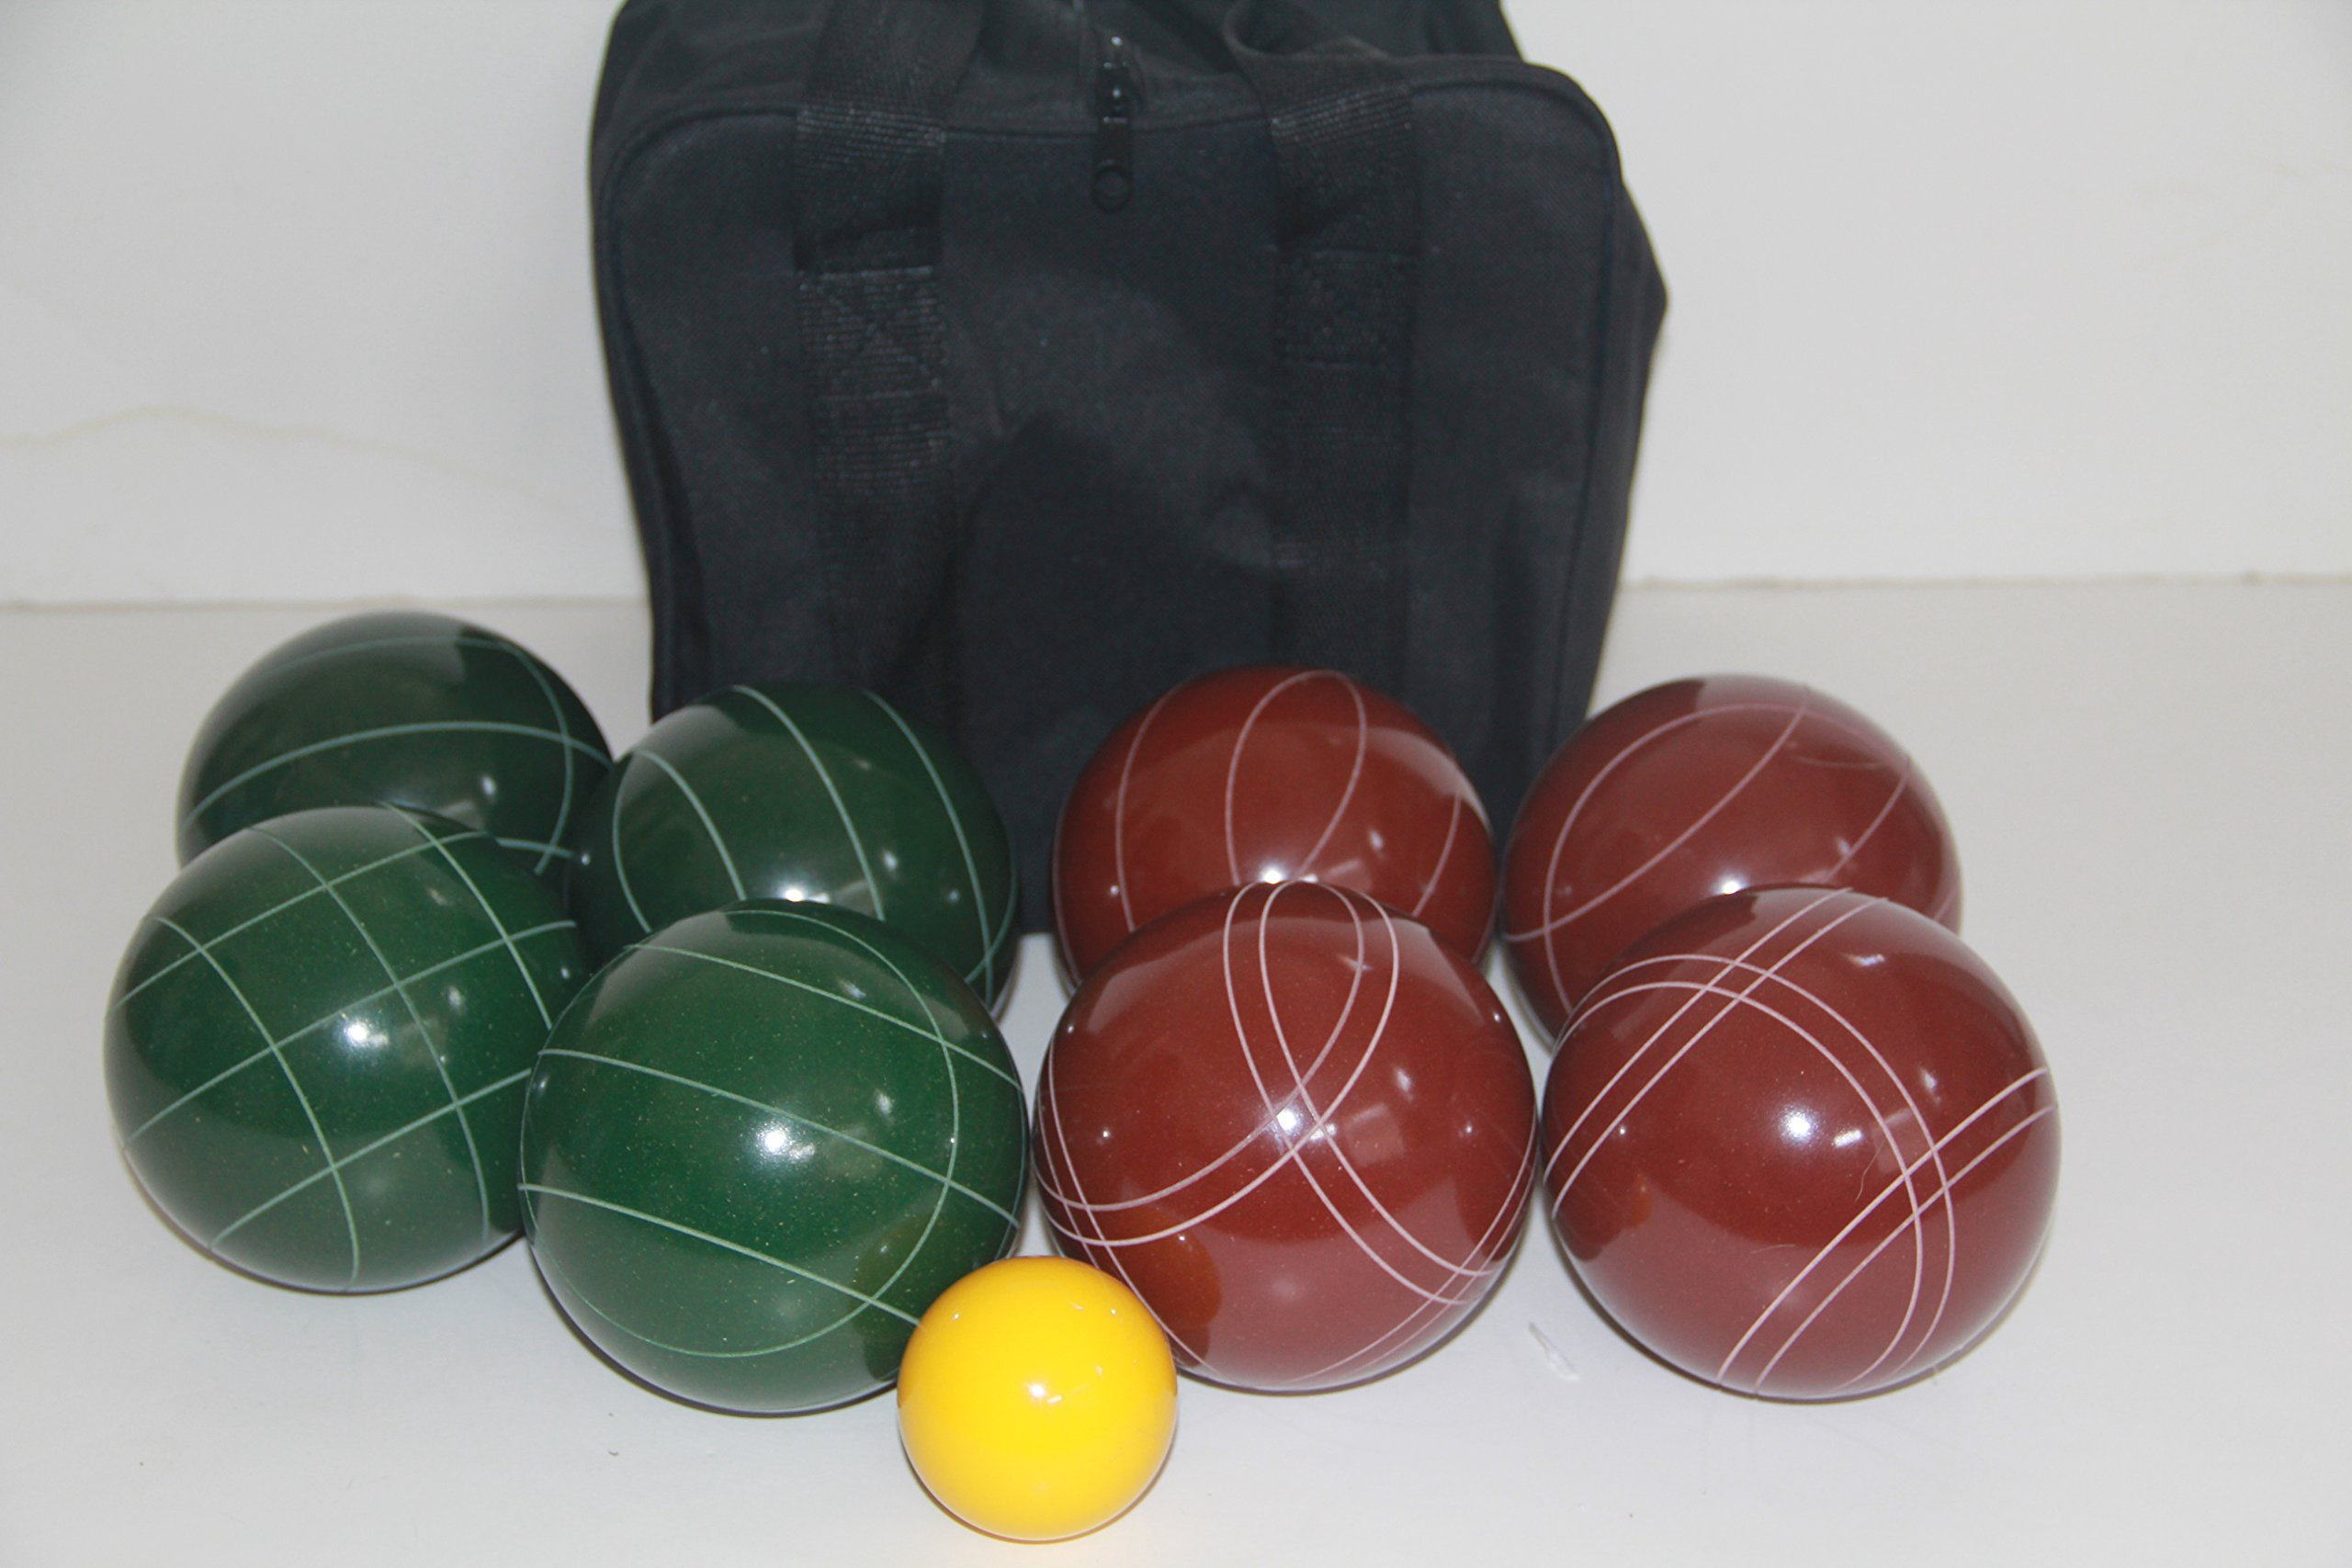 Premium Quality and American Made, 107mm EPCO Bocce Set - dark red and green balls and black bag